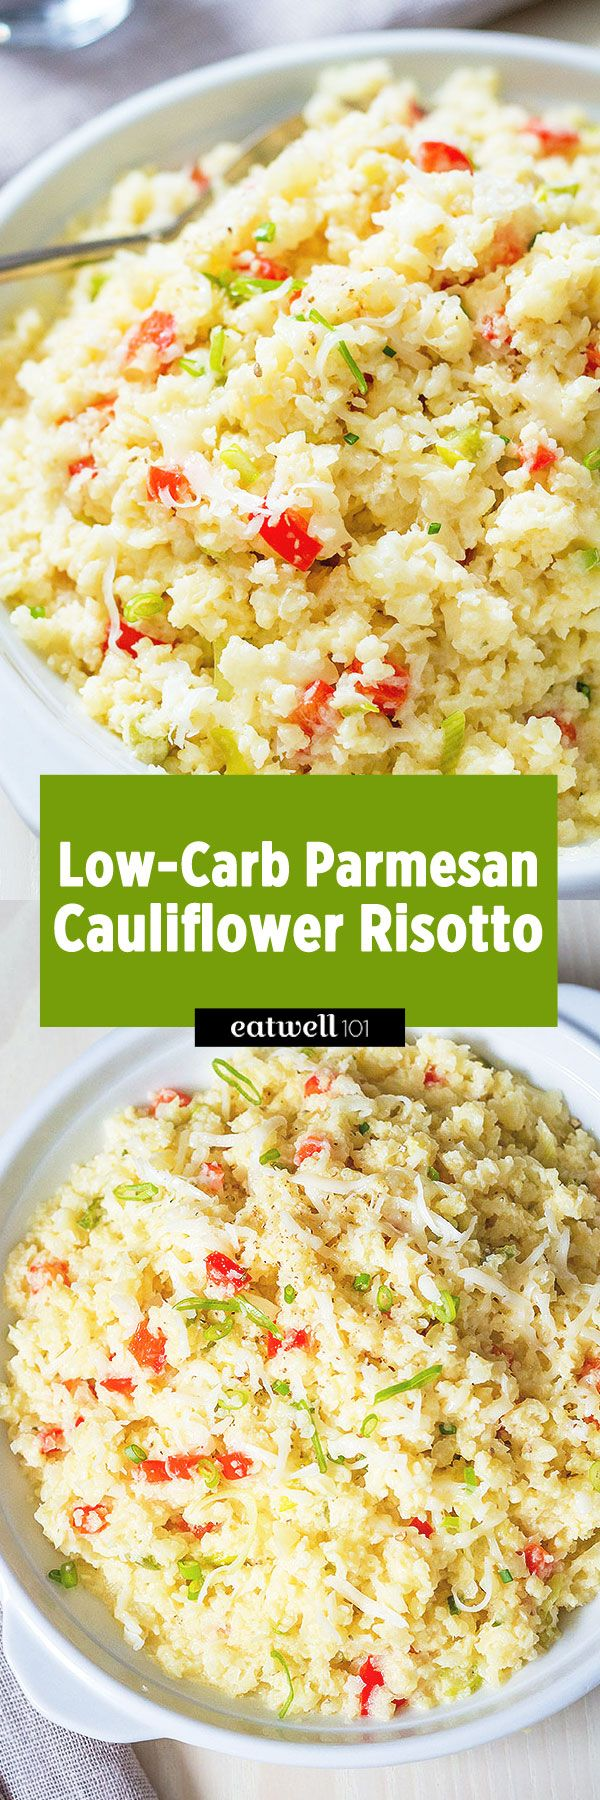 Looking for the perfect low-carb dish? This versatile cauliflower risotto perfectly mimics a classic risotto but each spoonful is packed with fresh vegetables.